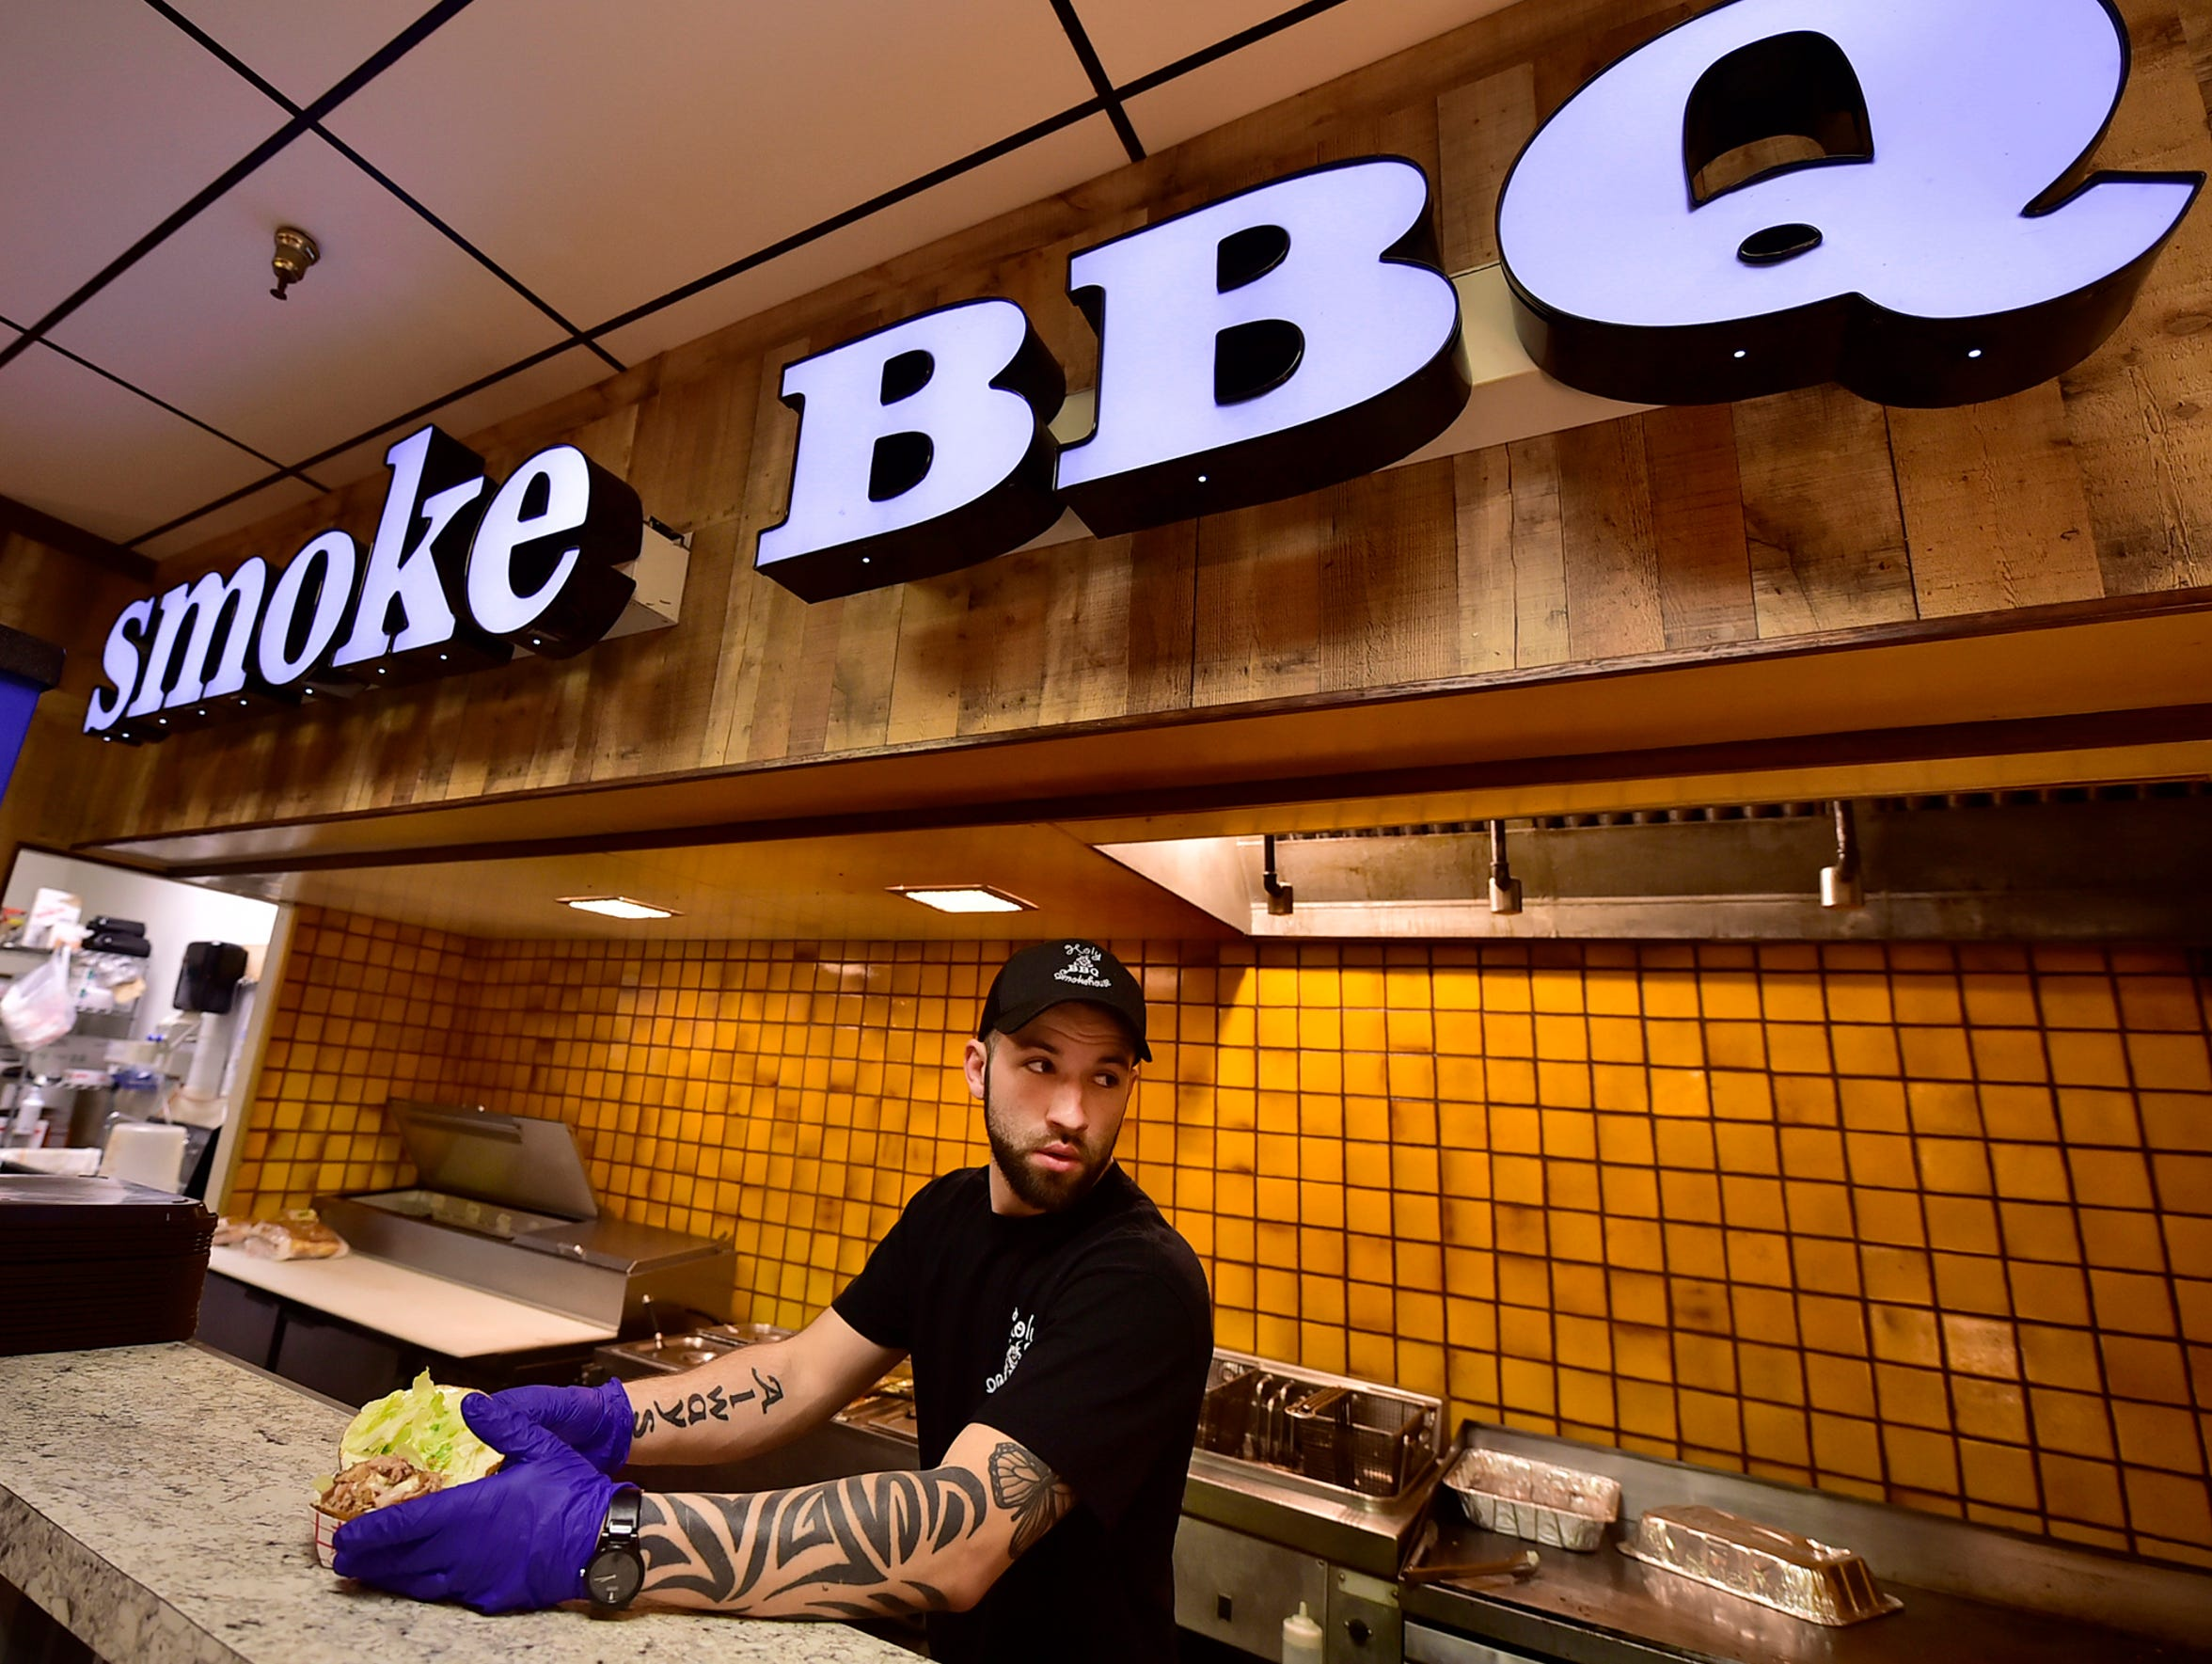 Austin Little prepares food at Holy Smokehouse BBQ on Wedensday, April 25, 2018. Bon-Ton is closing and many anchor stores have left Chambersburg Mall. The future of the mall, and other malls nationally, could be impacted by store closings.